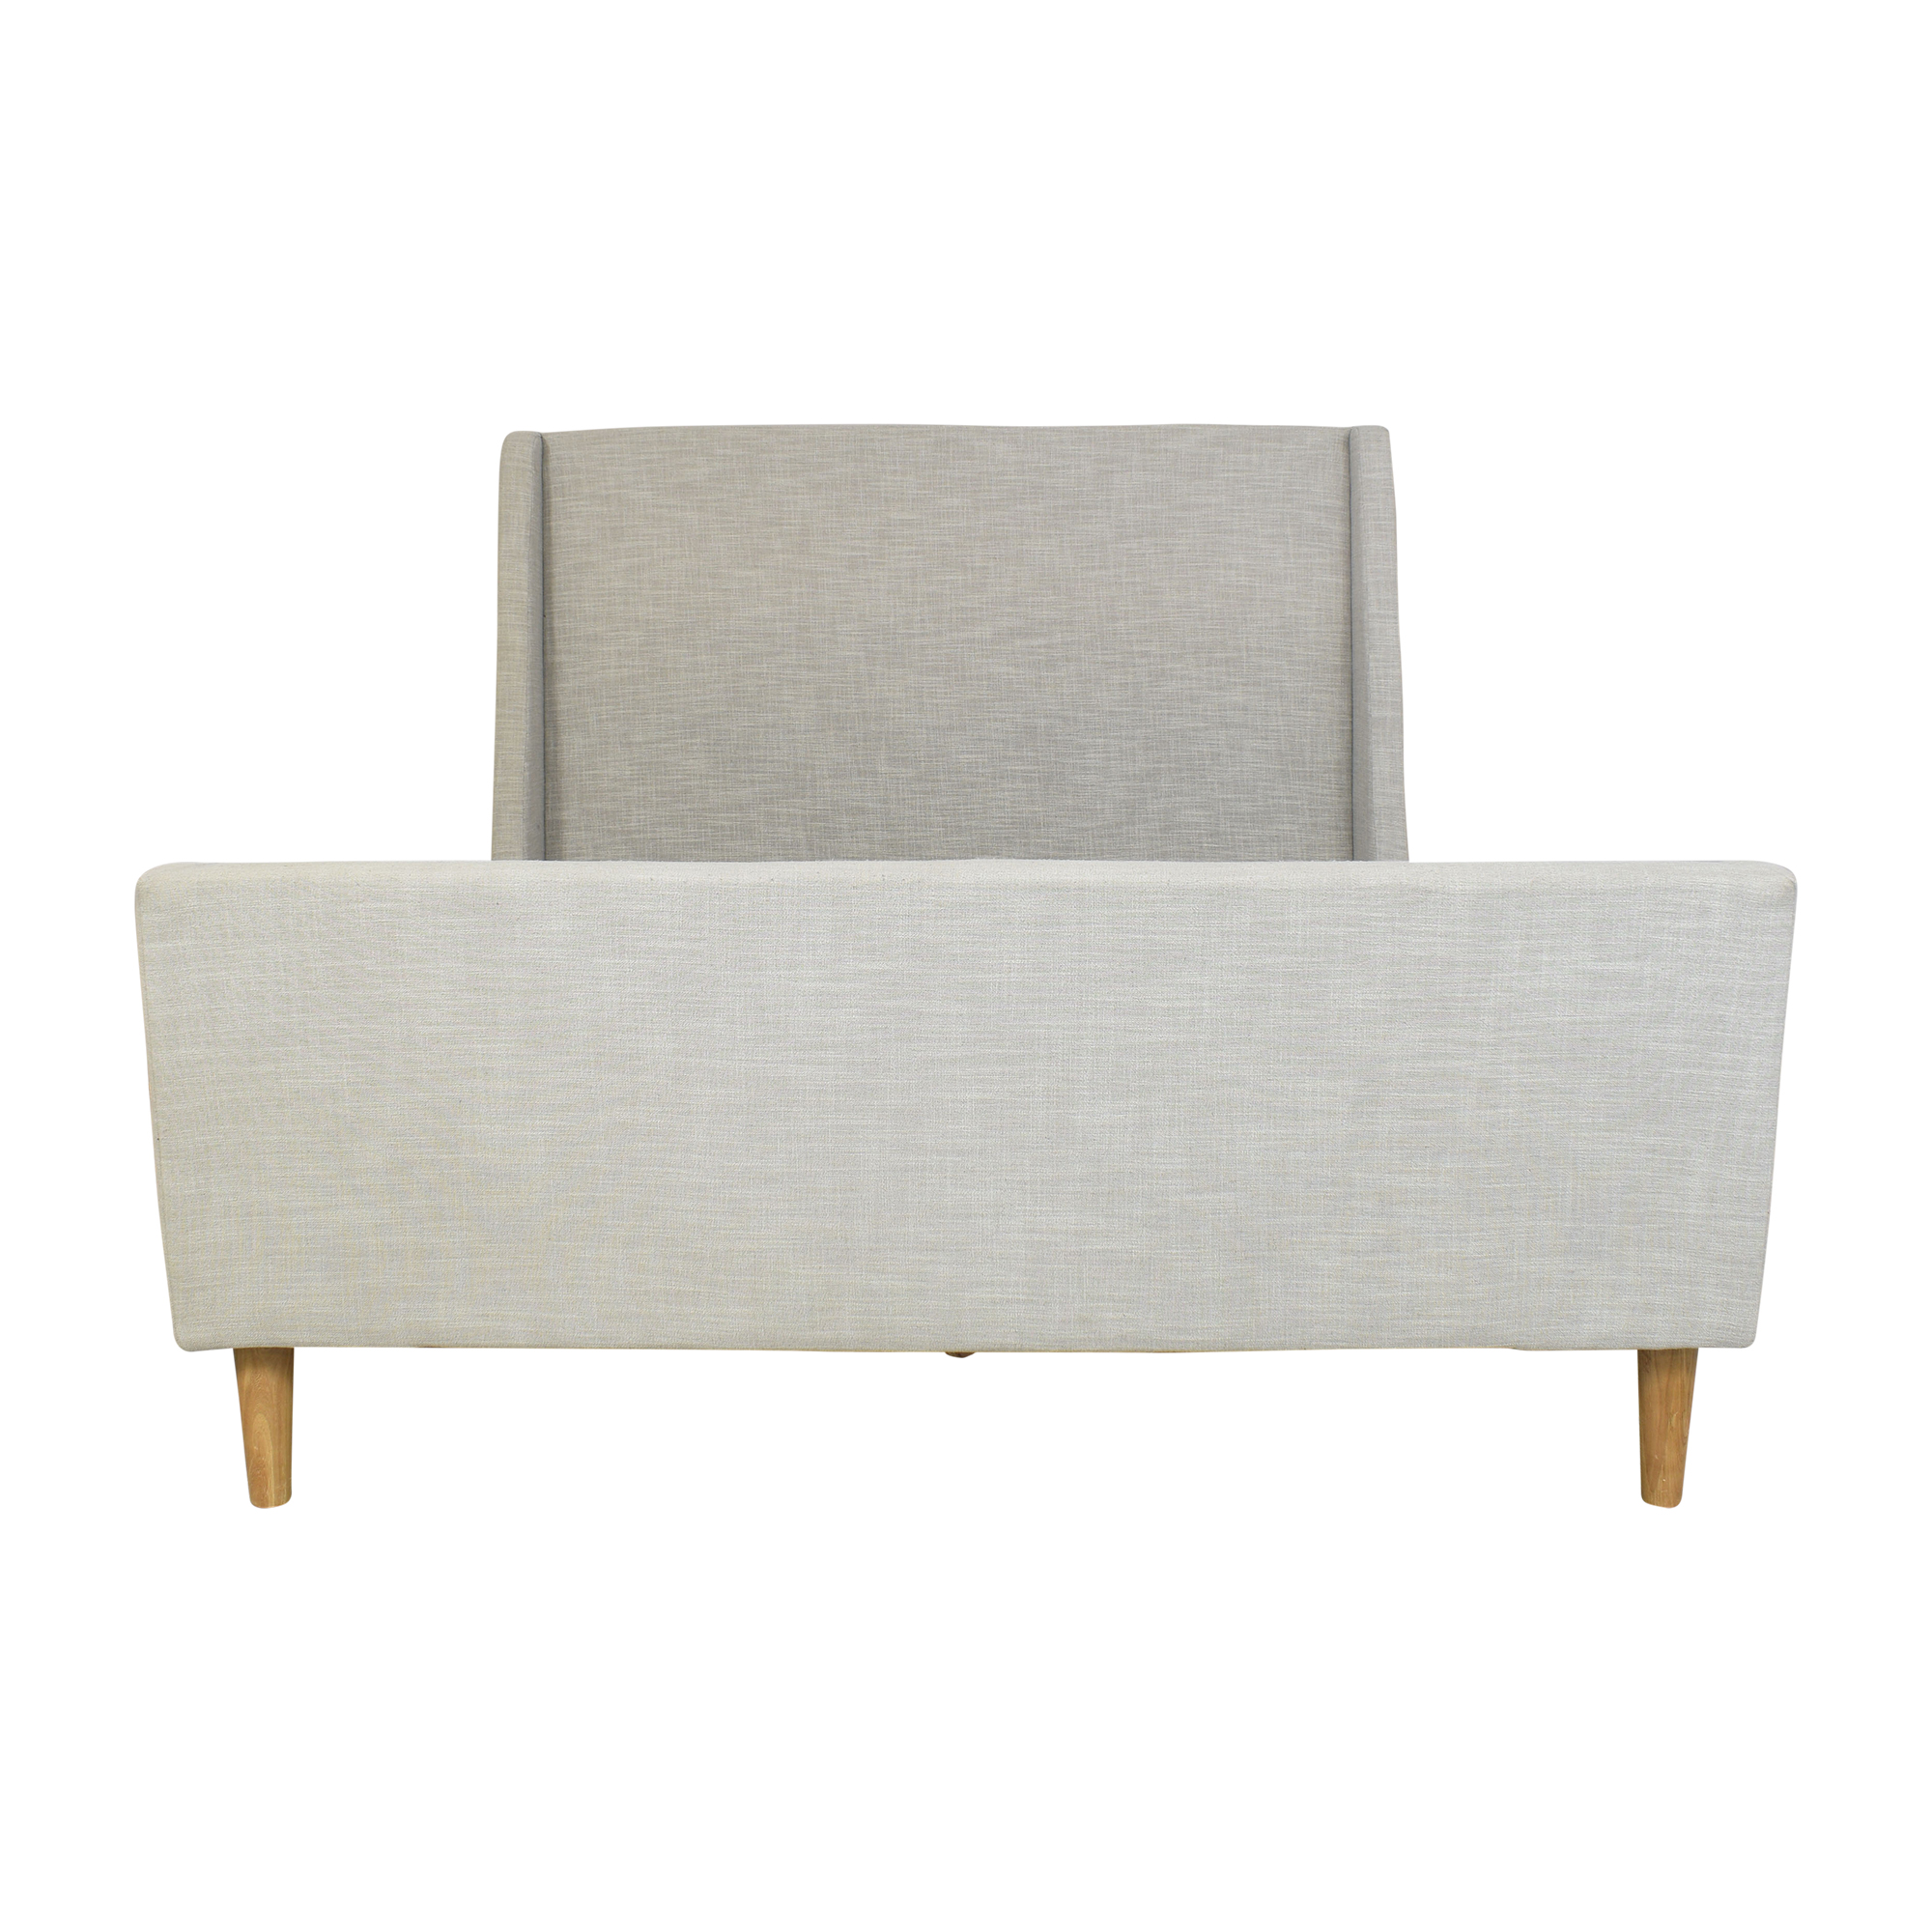 West Elm West Elm Upholstered Sleigh Queen Bed dimensions